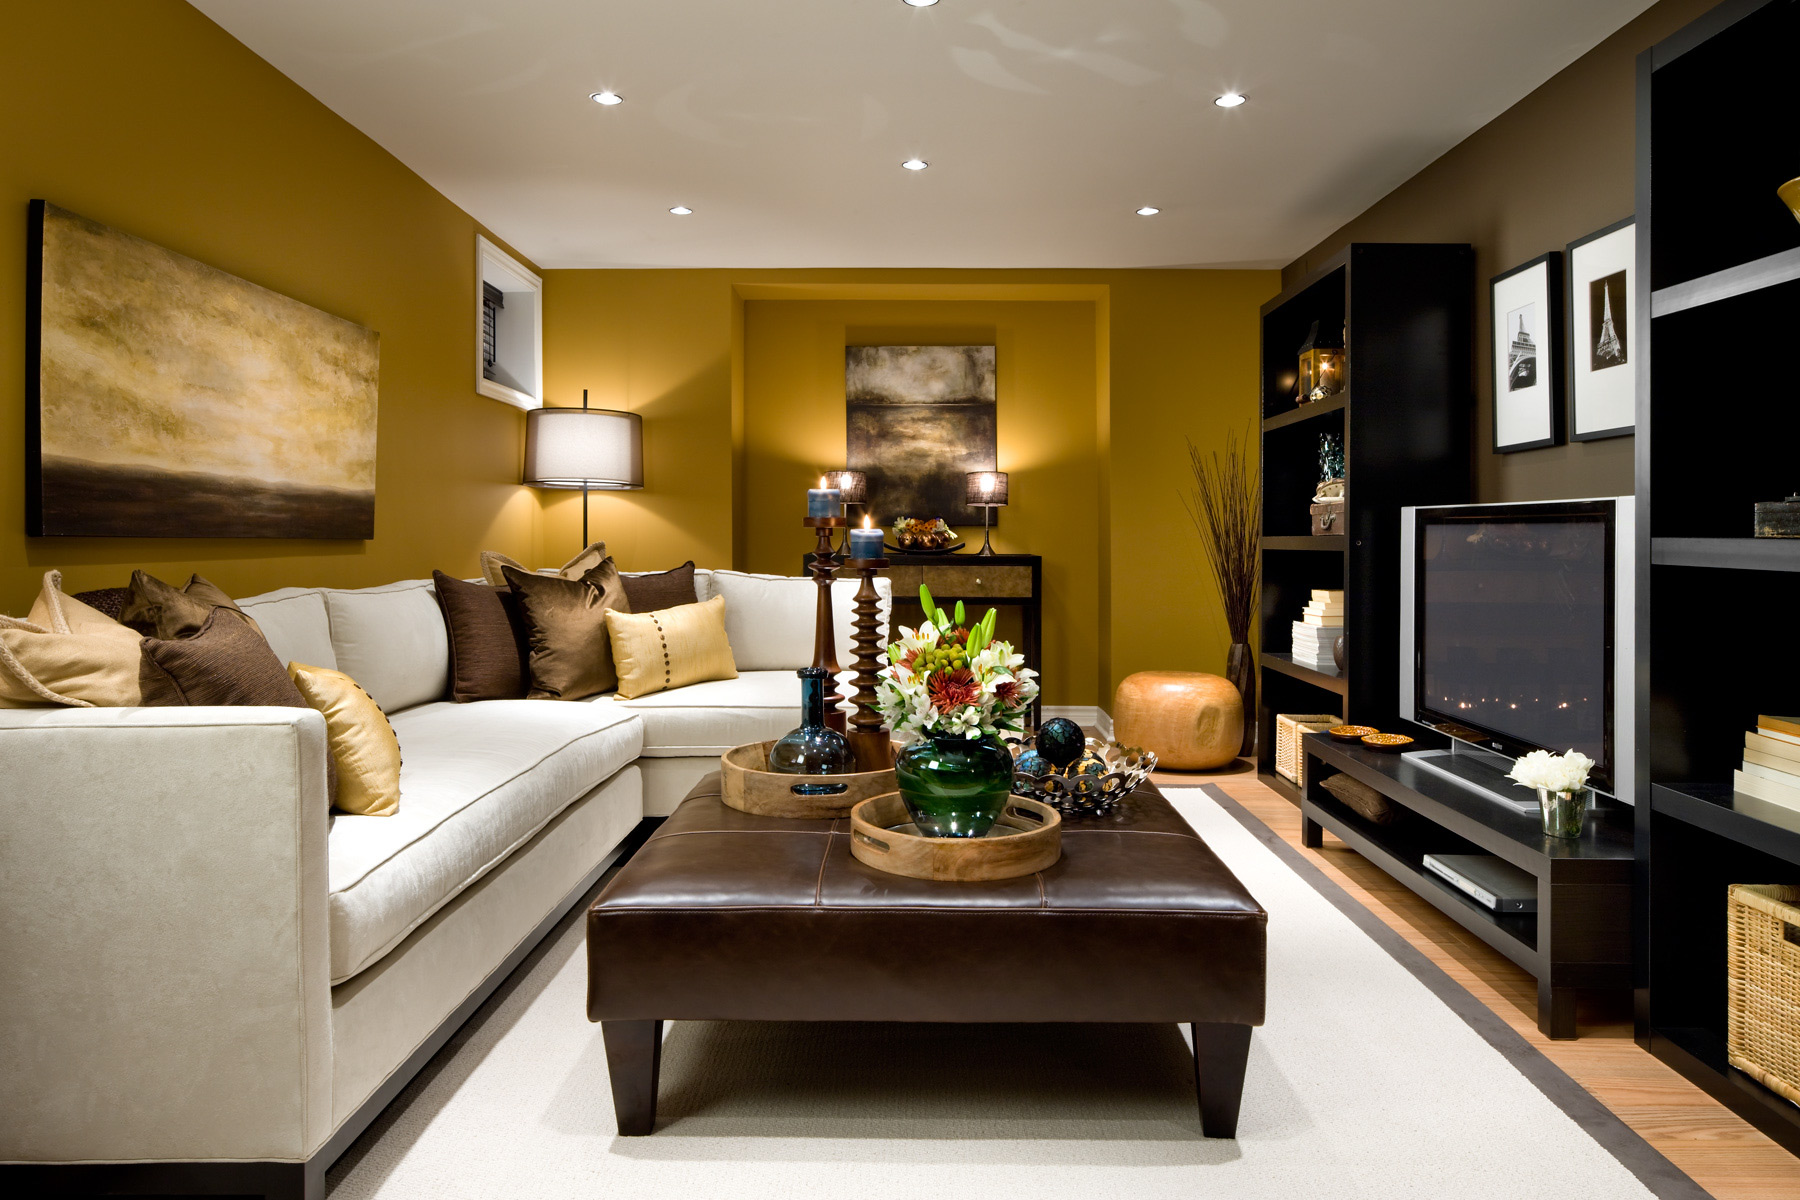 Best 2. Earthly Pleasures modern small living room design